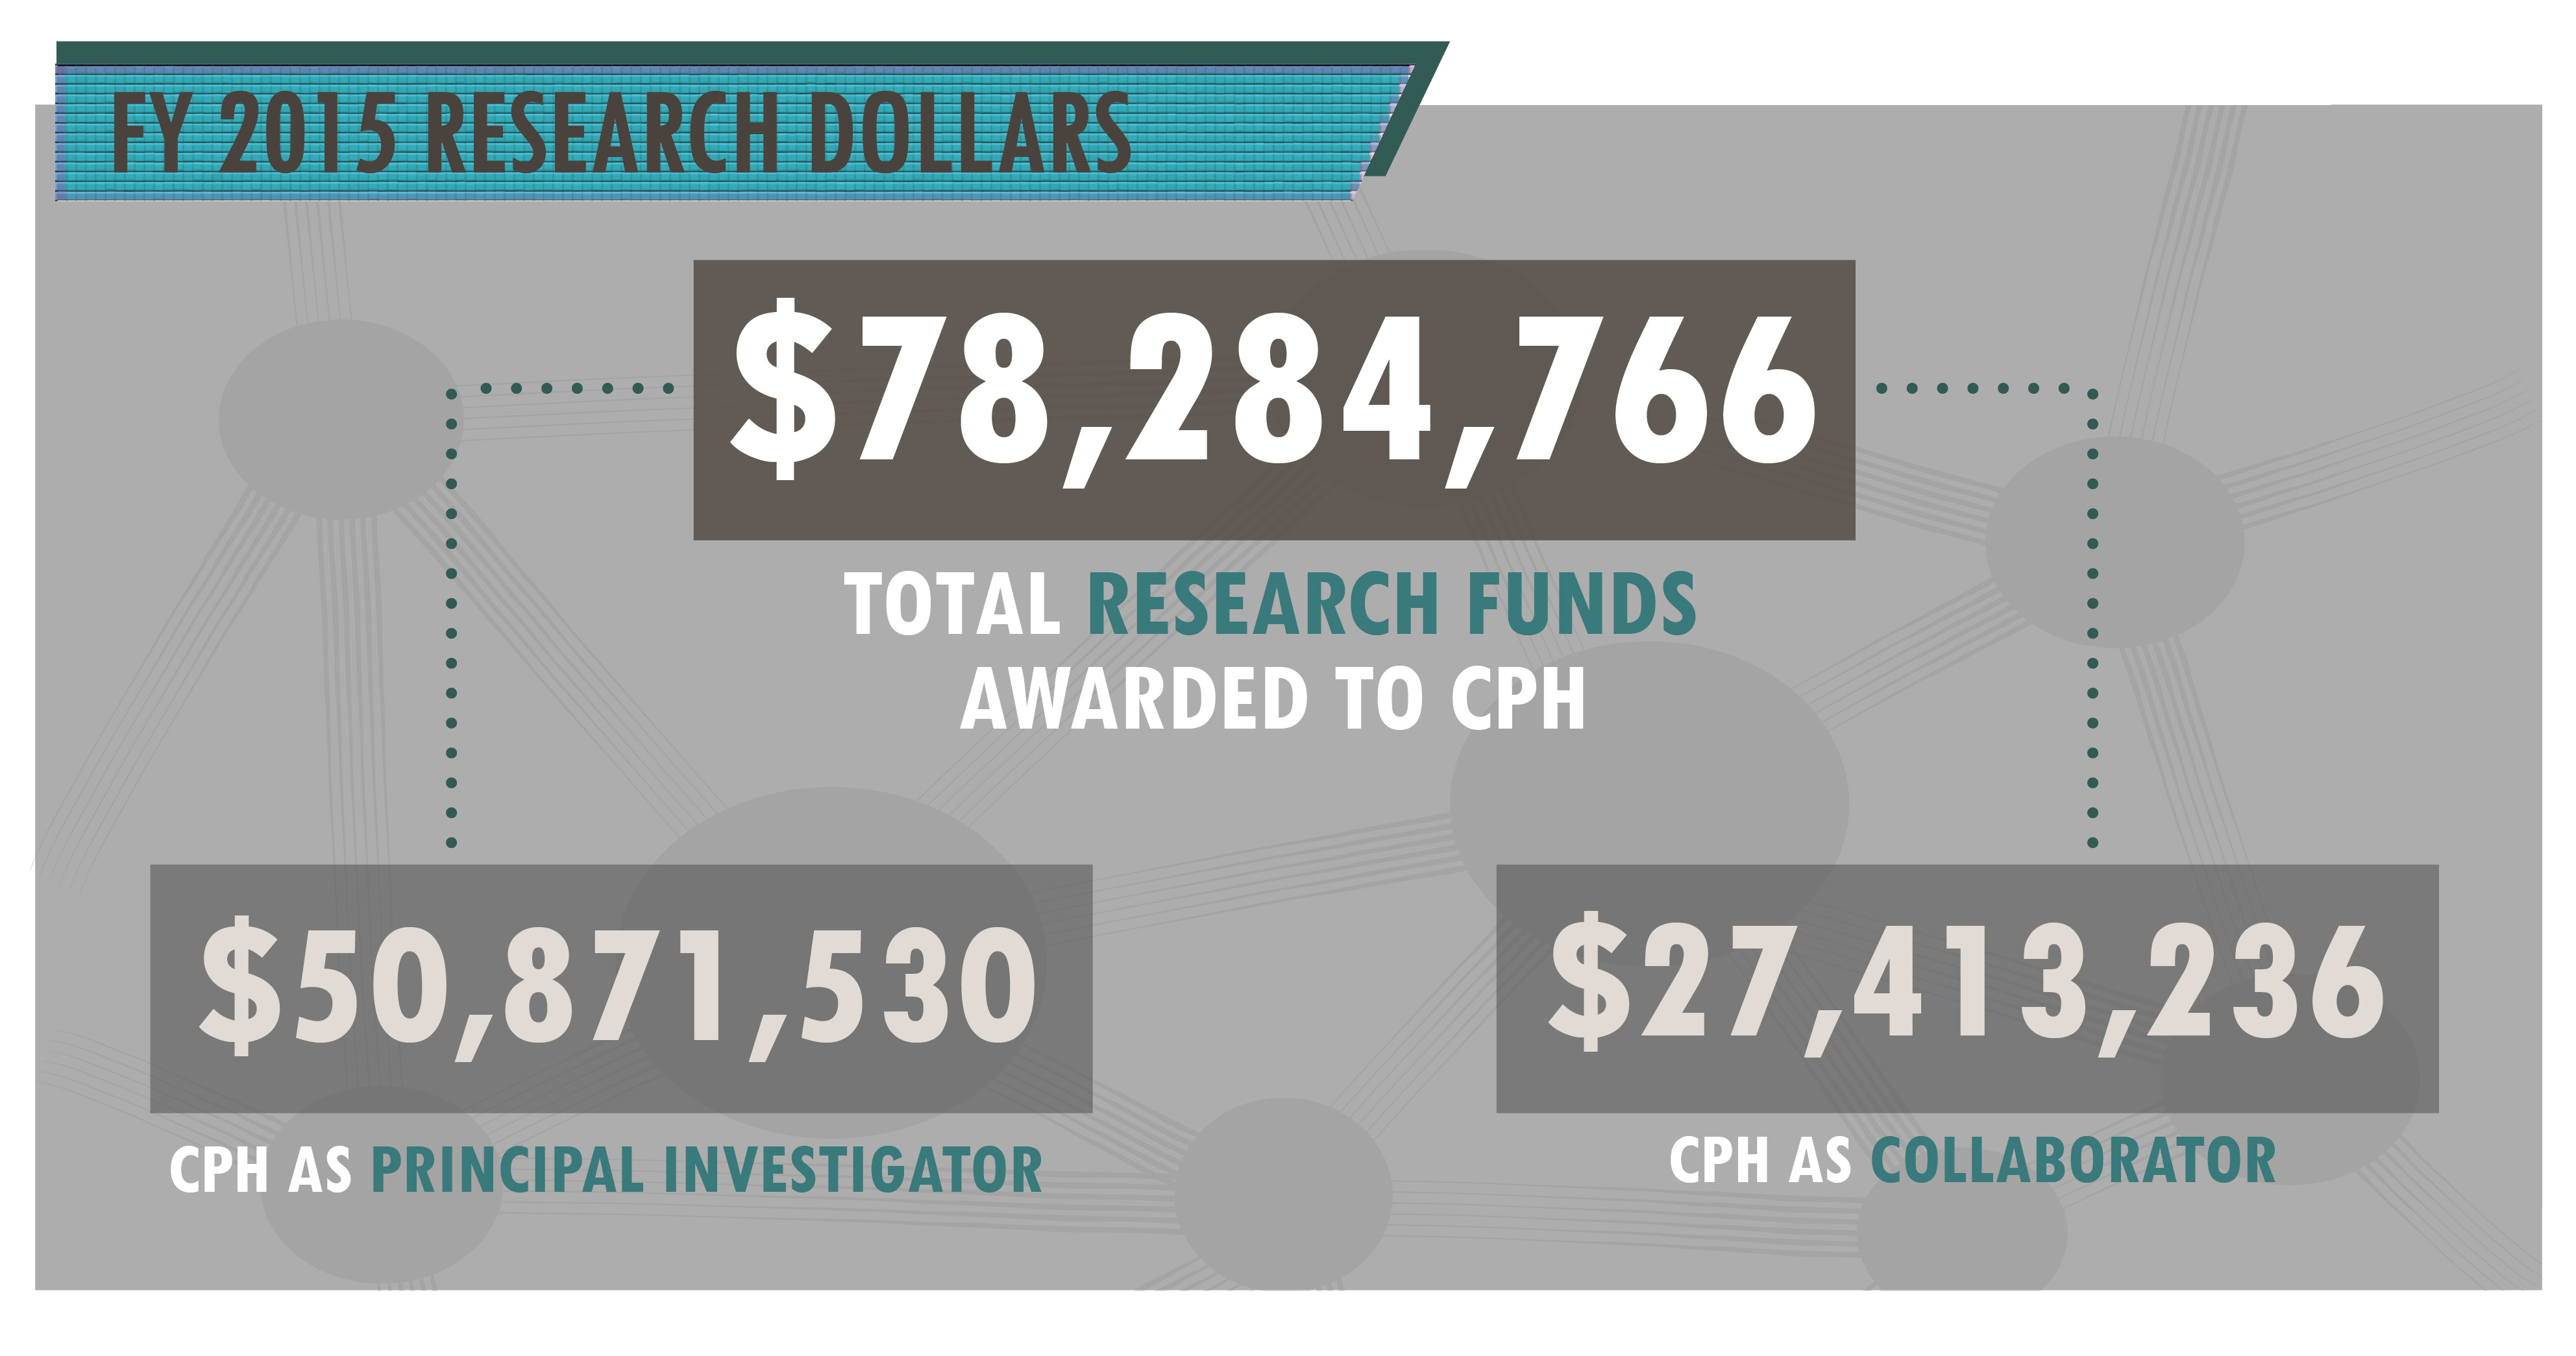 Research dollars awarded to the College of Public Health in FY 2015.